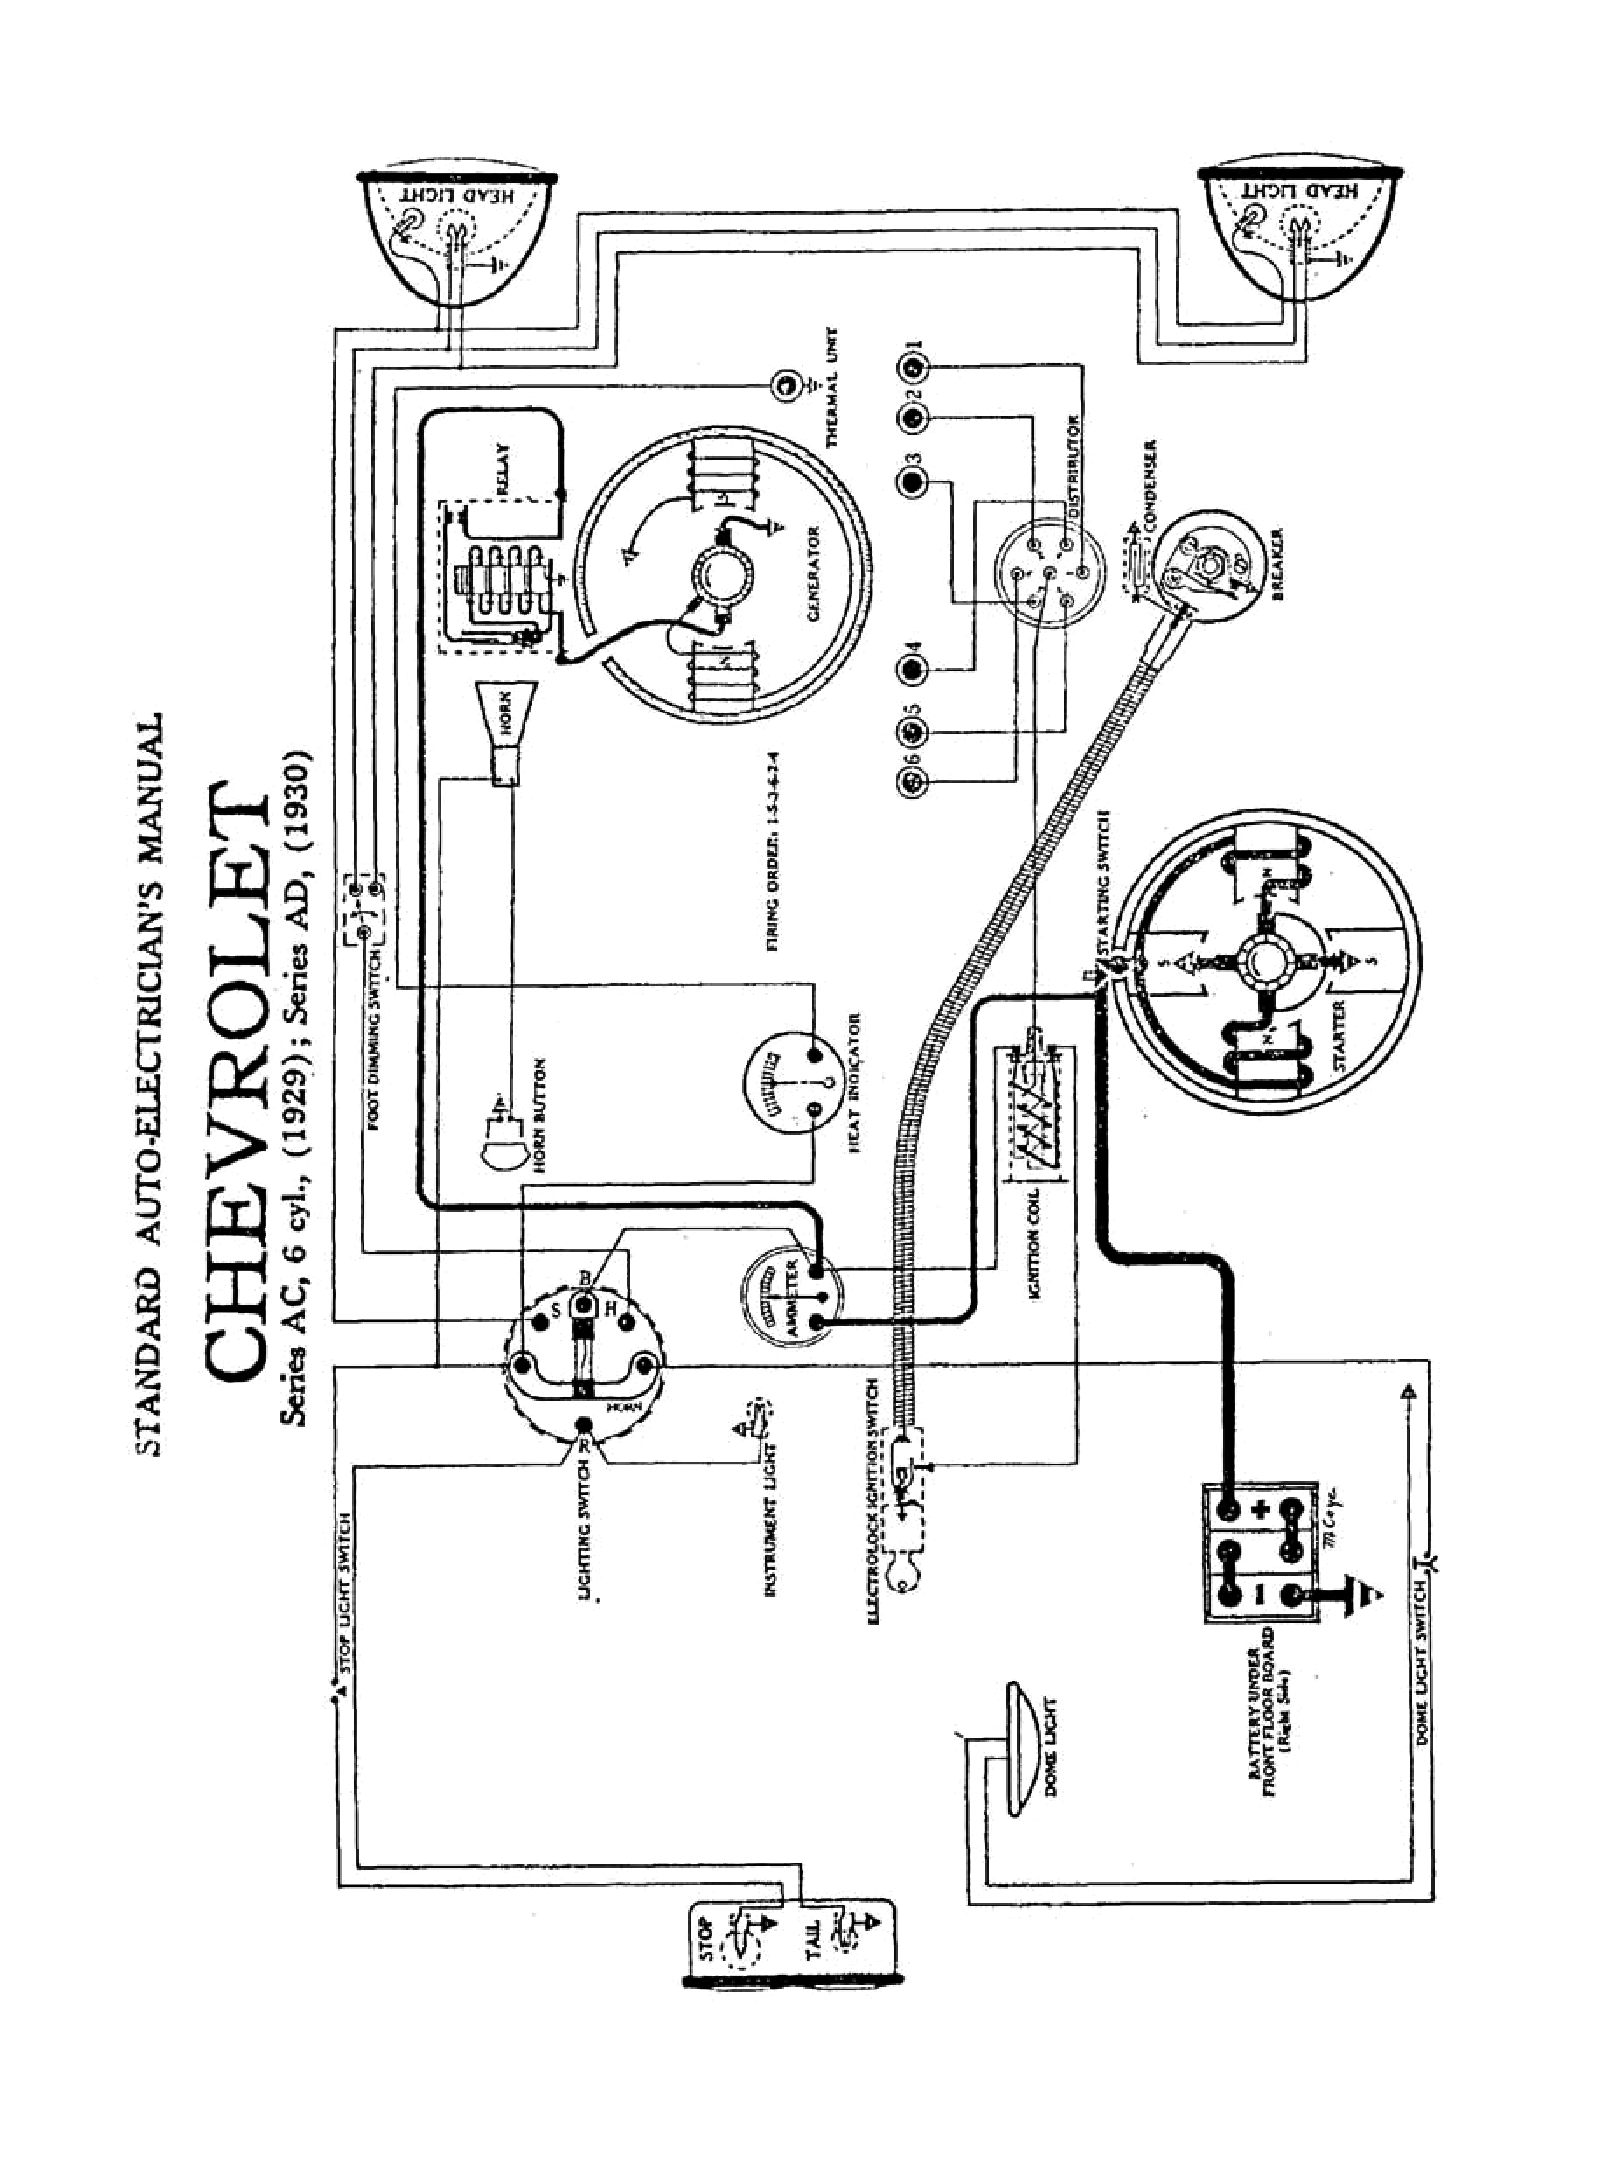 Two Cylinder Wiring Diagram Murray Guide And Troubleshooting Of Schematic Model Todays Rh 7 16 10 1813weddingbarn Com Engine Parts